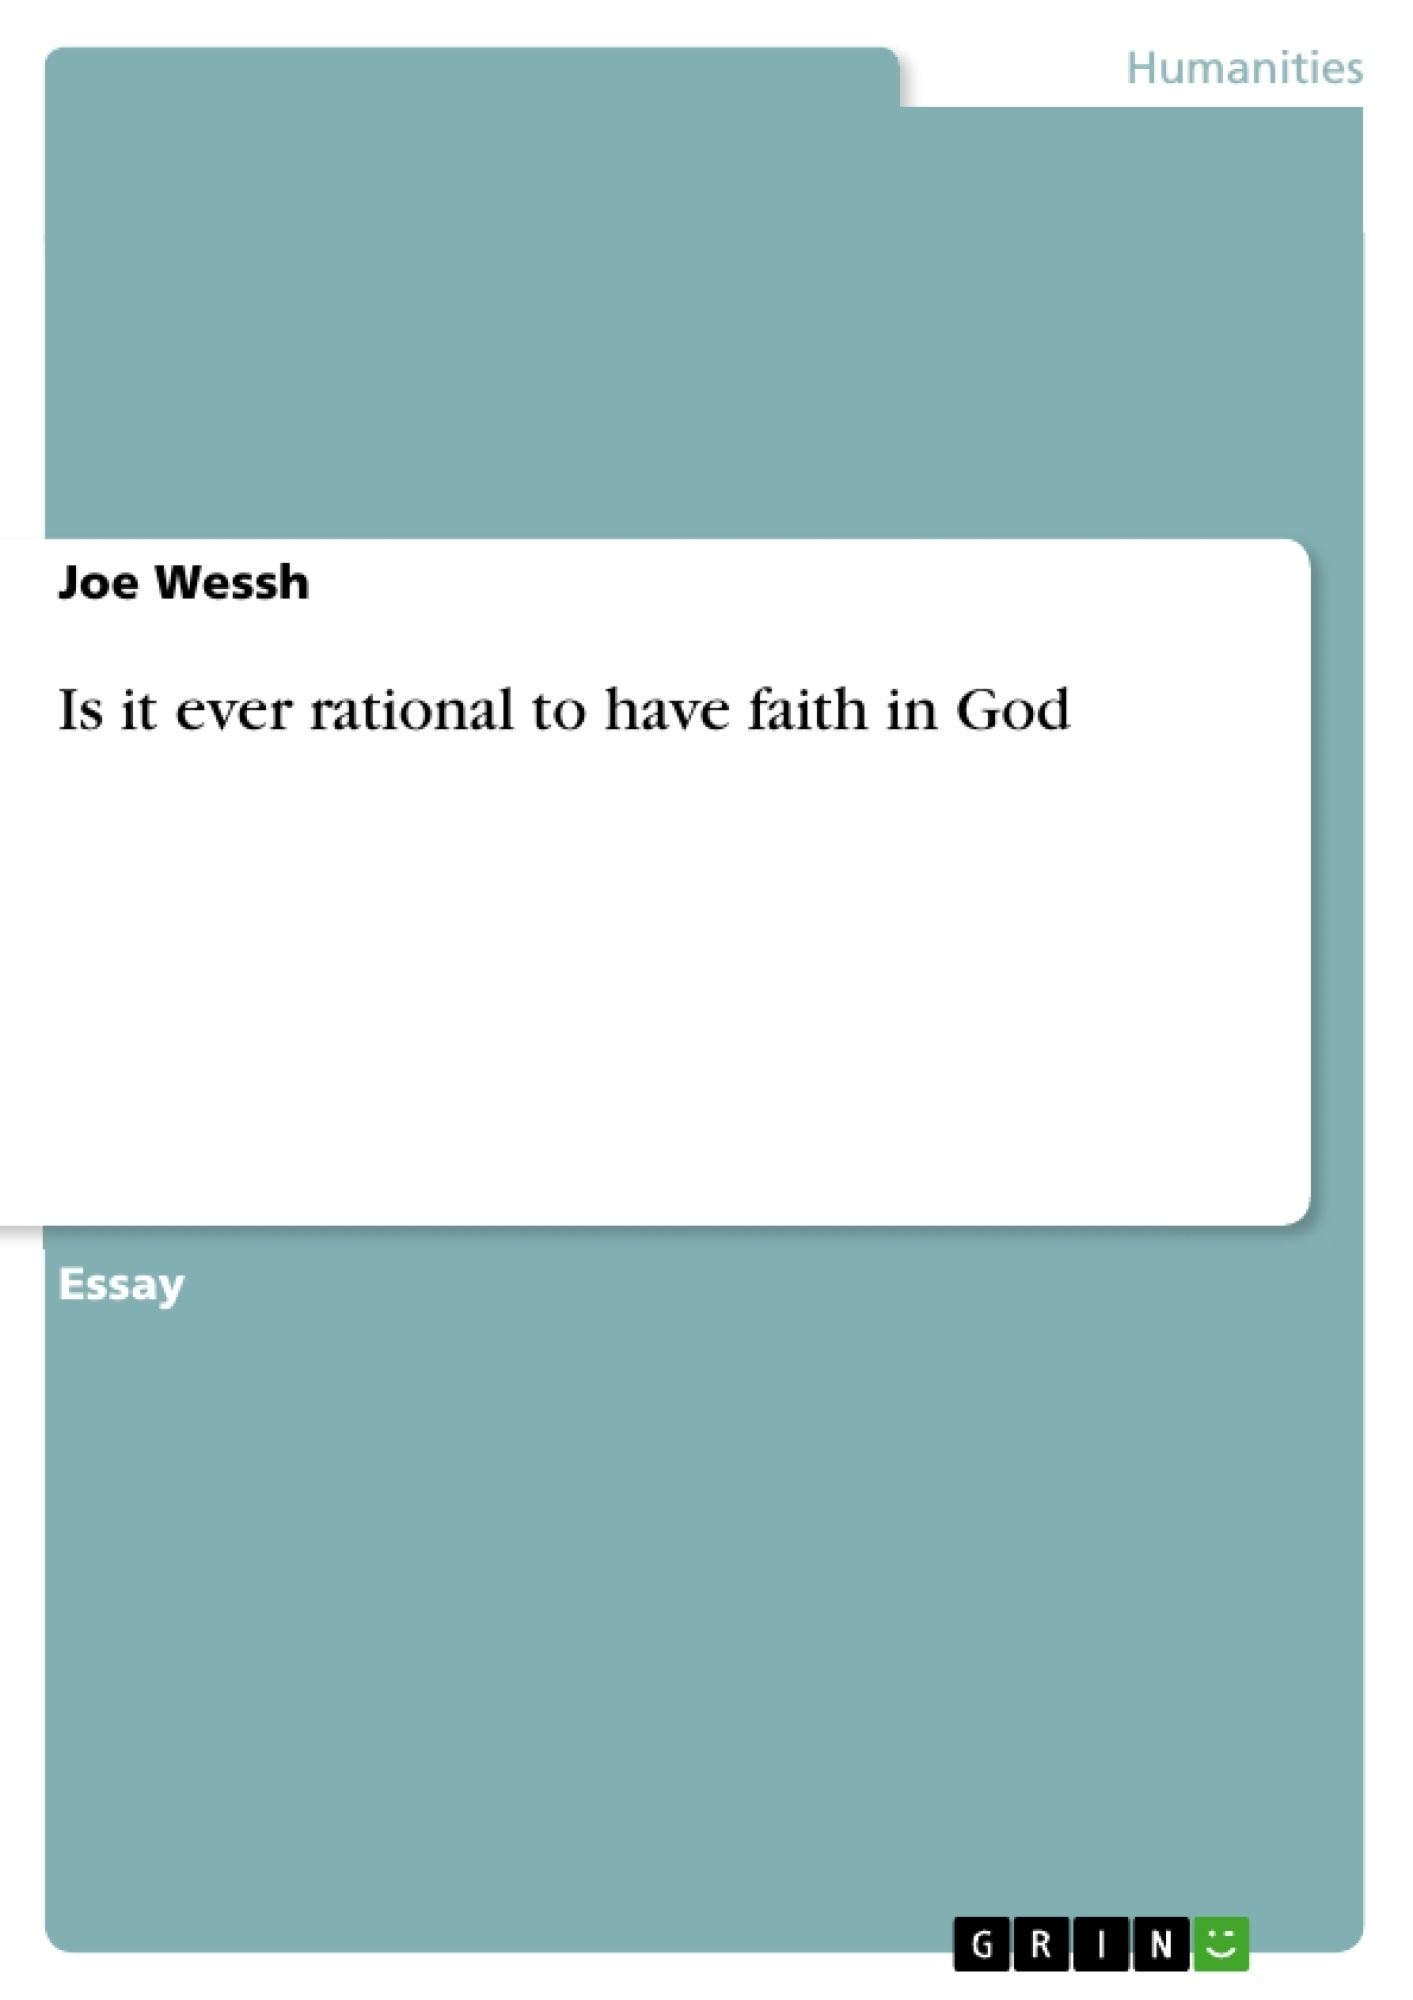 Title: Is it ever rational to have faith in God